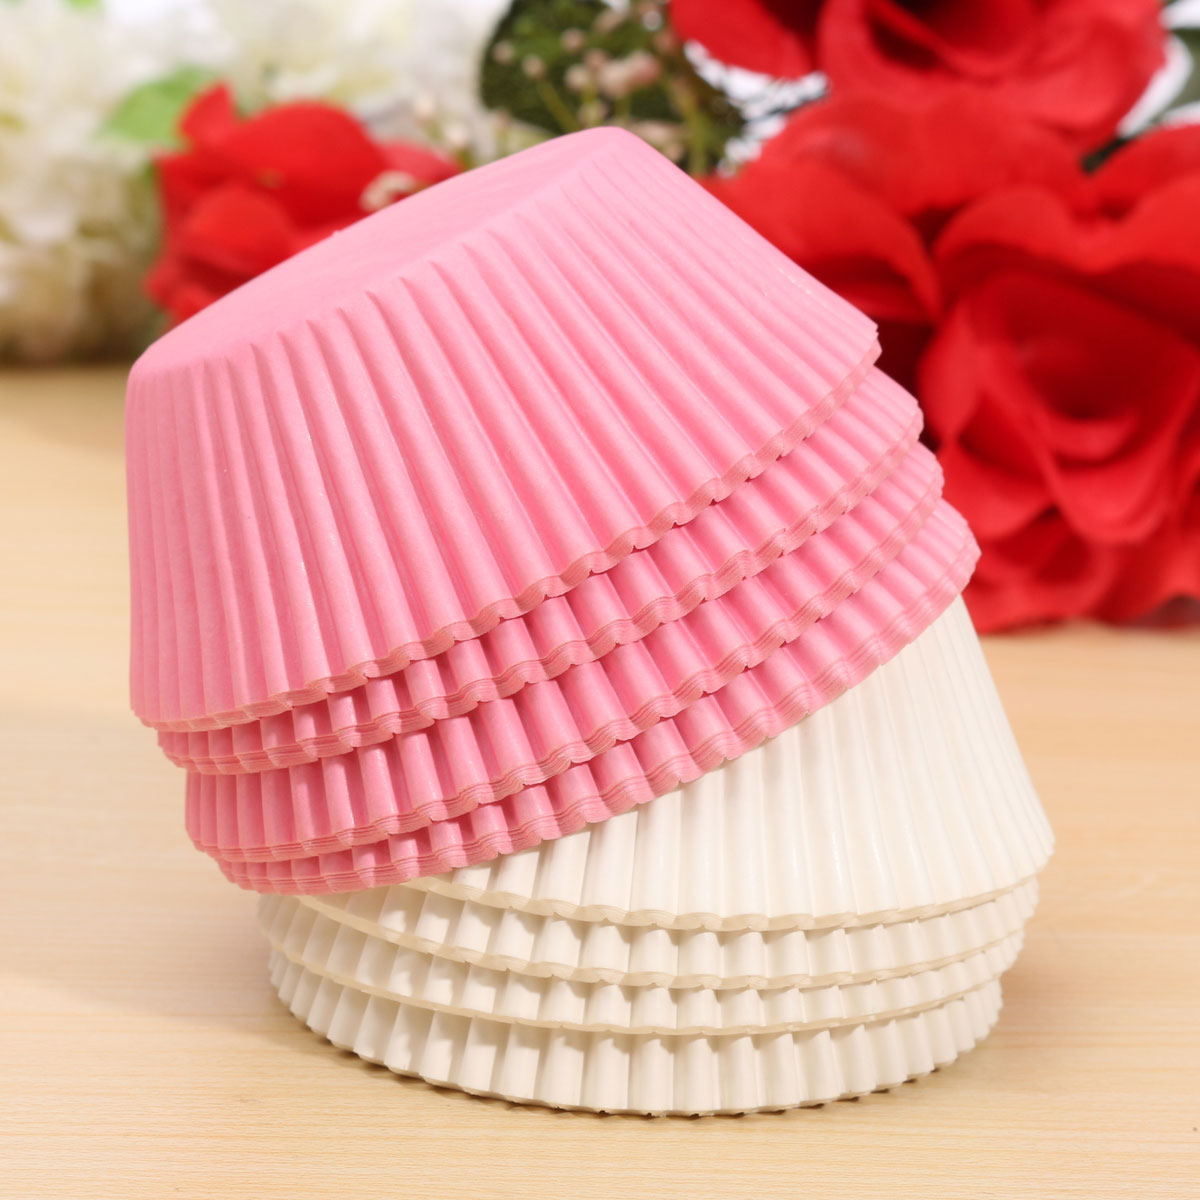 100pcs Cake Cup Wedding Party Cake Baking Mold Muffin Dessert Baking Cup